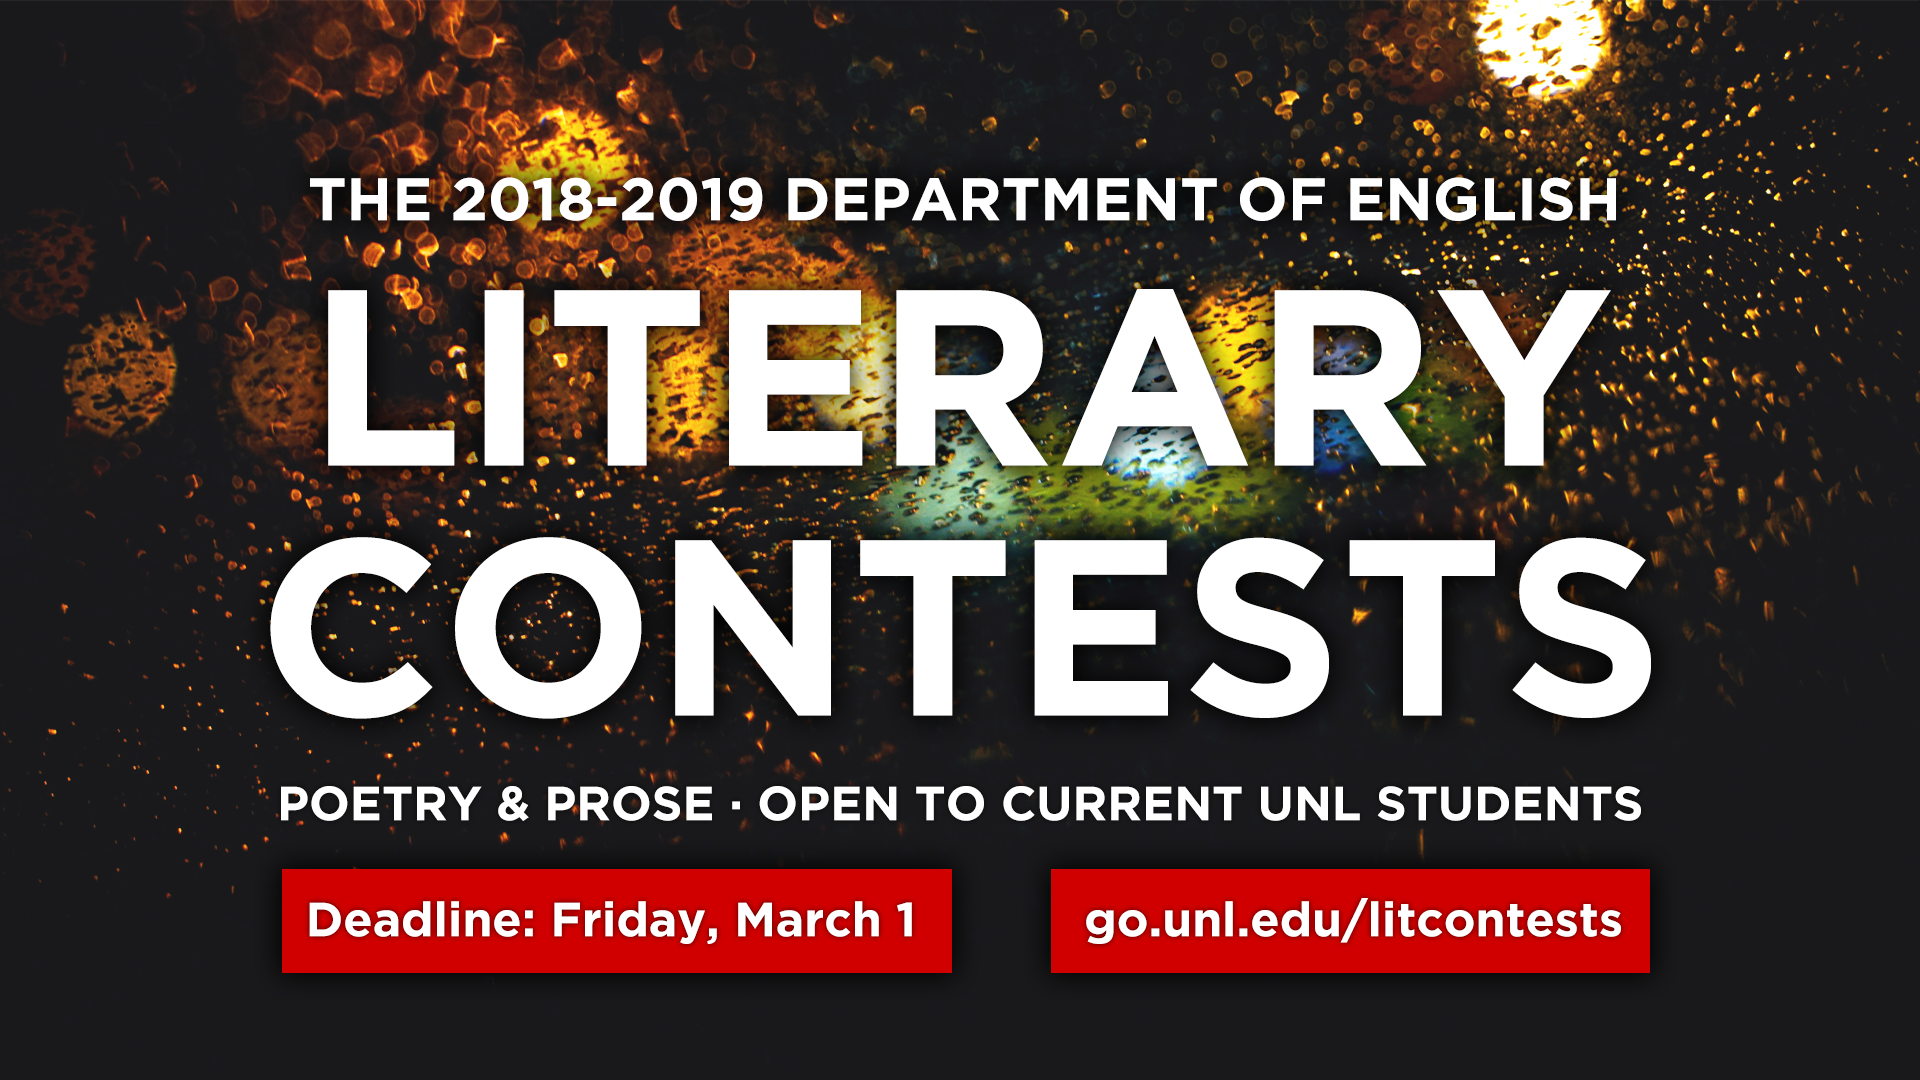 Image with text - The 2018-2019 Department of English Literary Contests - Poetry & Prose - open to current UNL students. Deadline: Friday, March 1. go.unl.edu/litcontests; links to news story